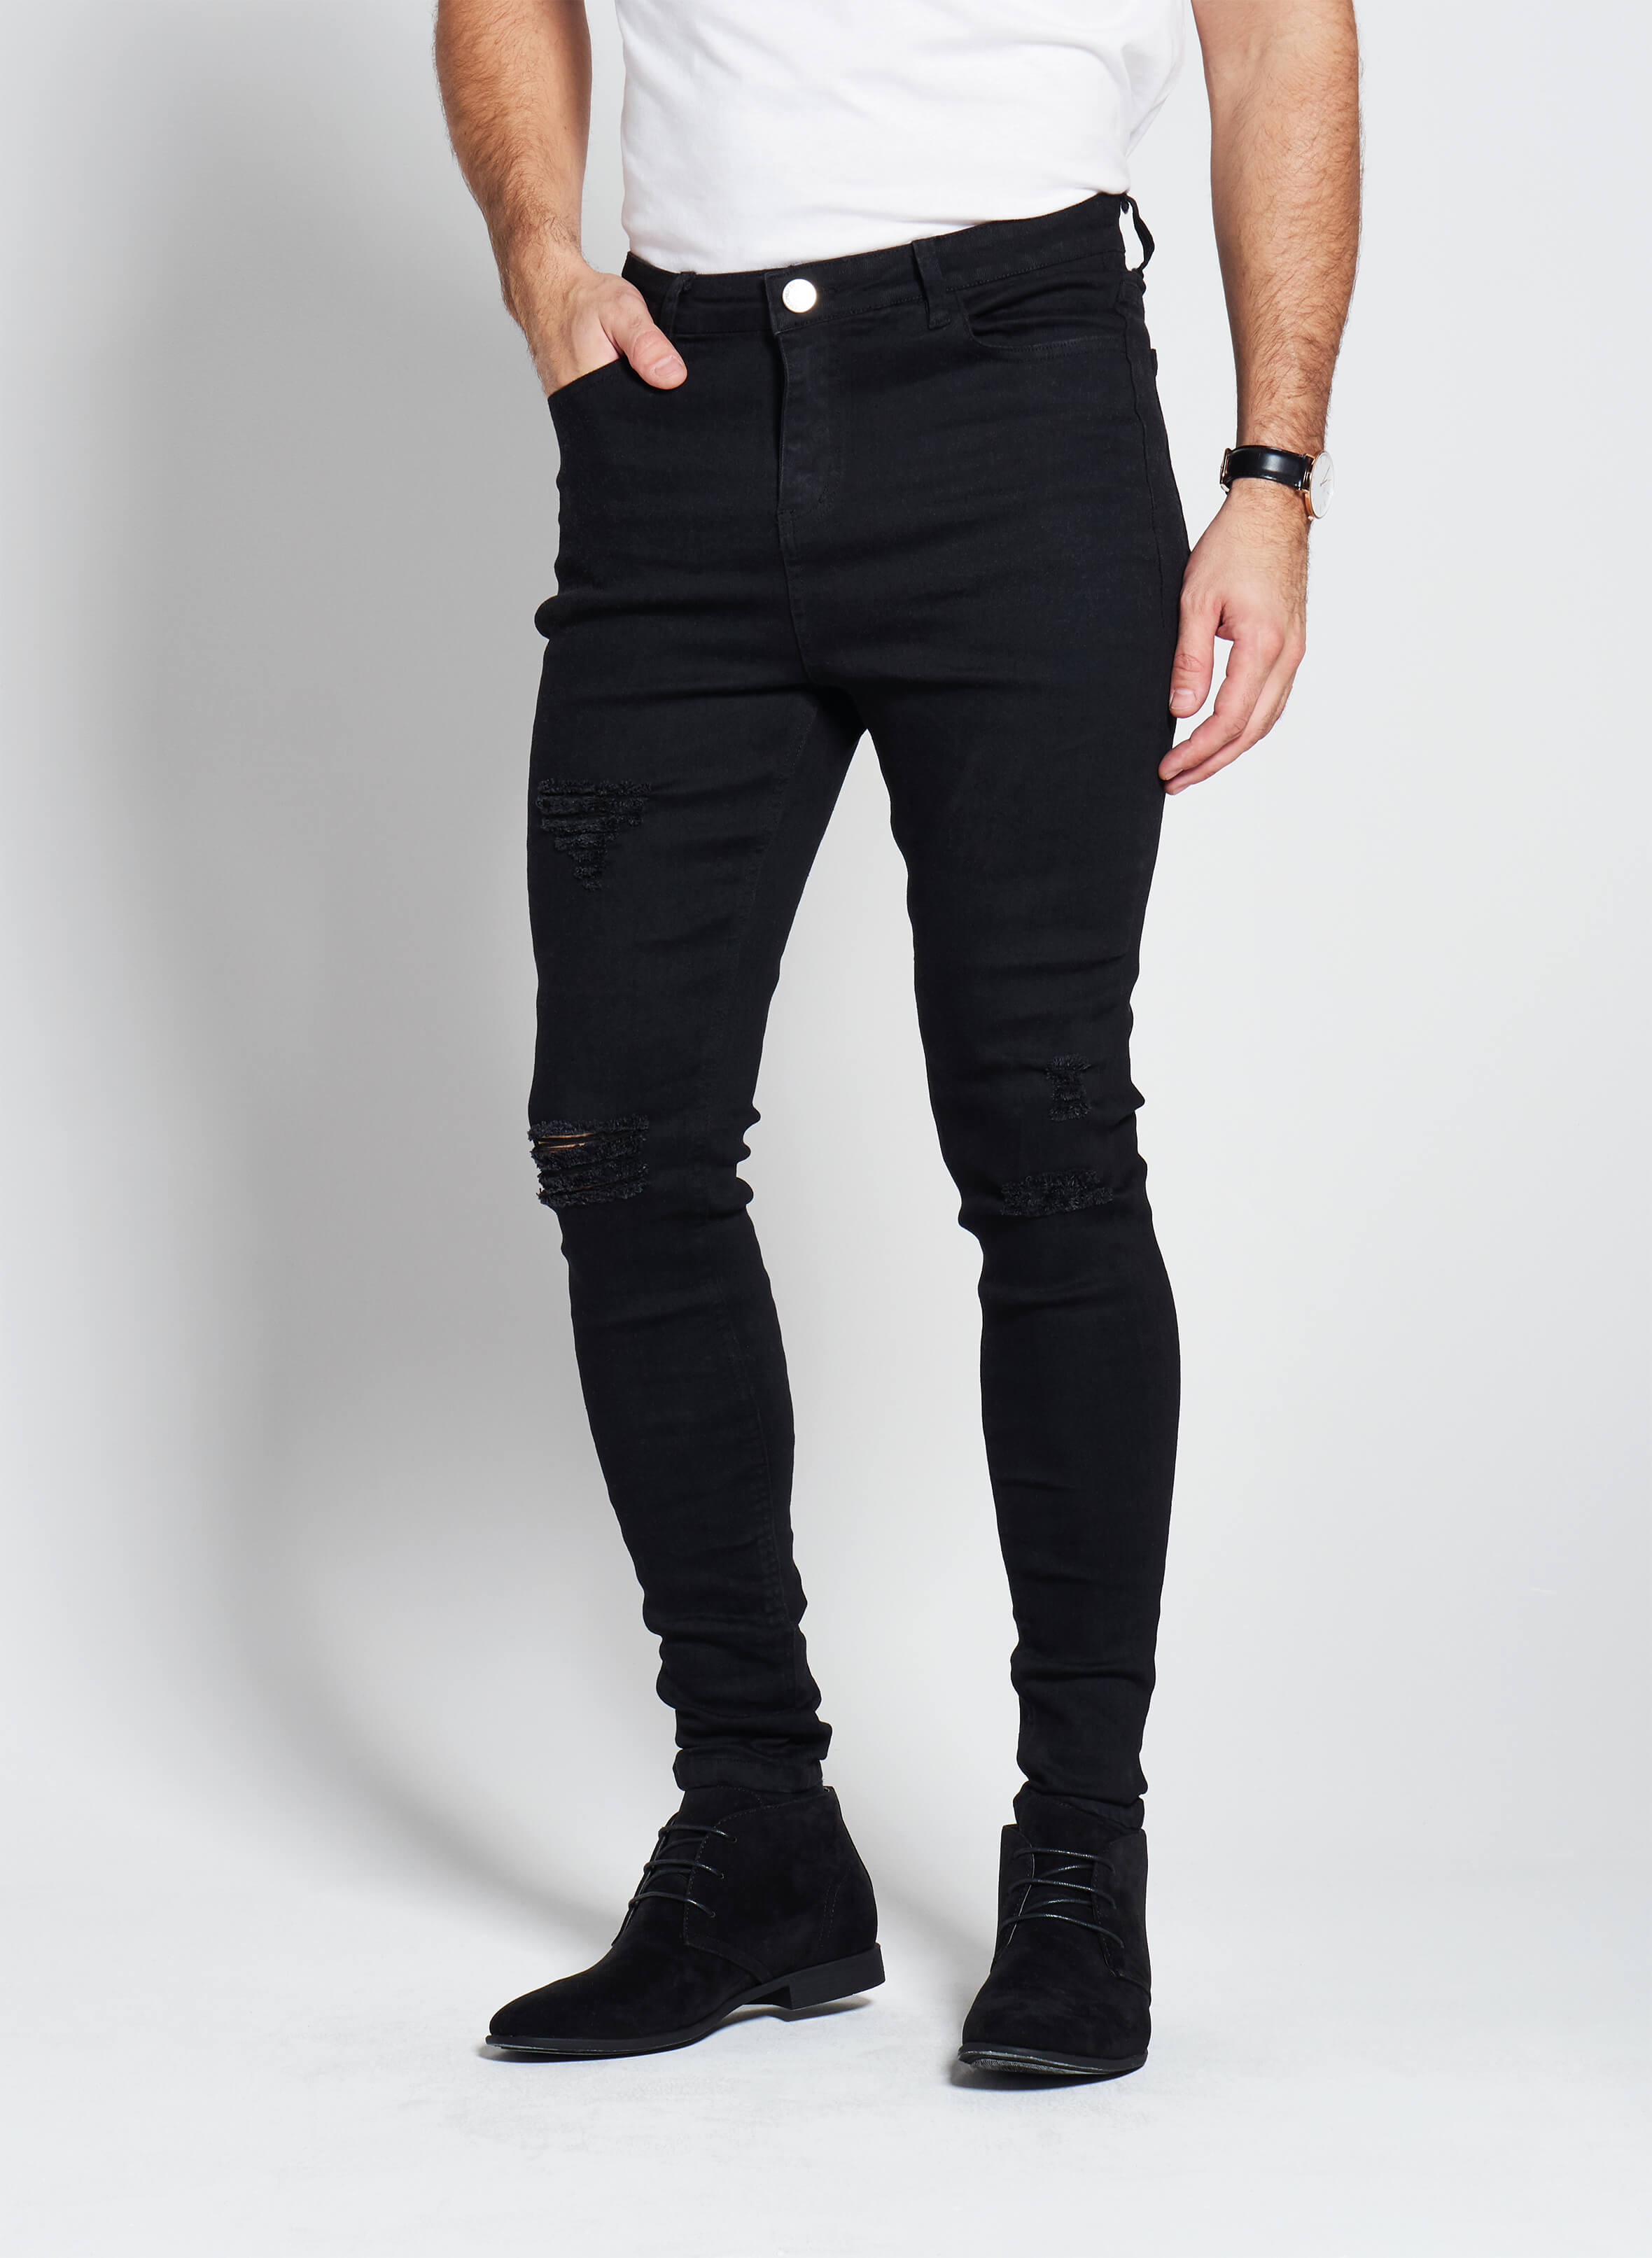 Denim Only® Spray On Jeans - Ripped Black